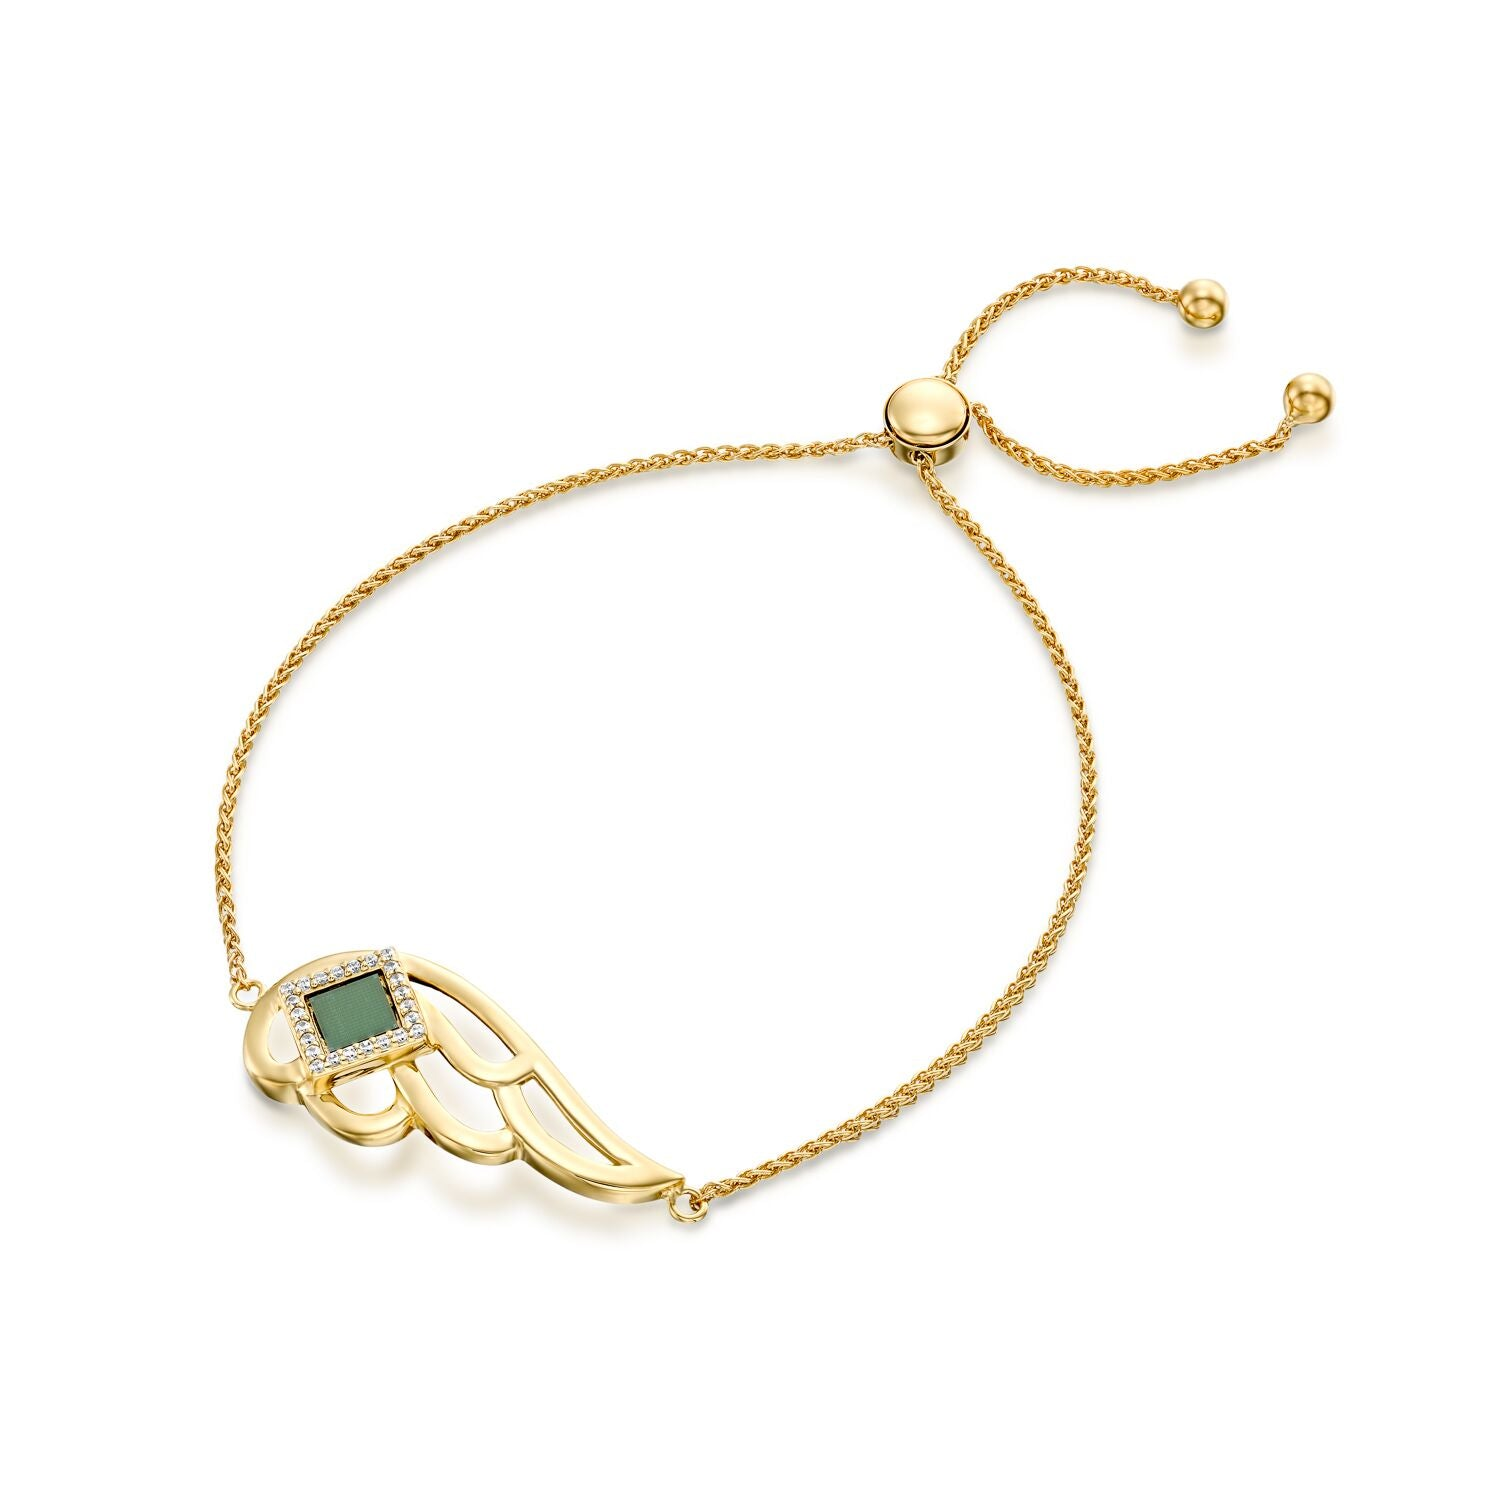 The Shiny Angel Wing Bracelet